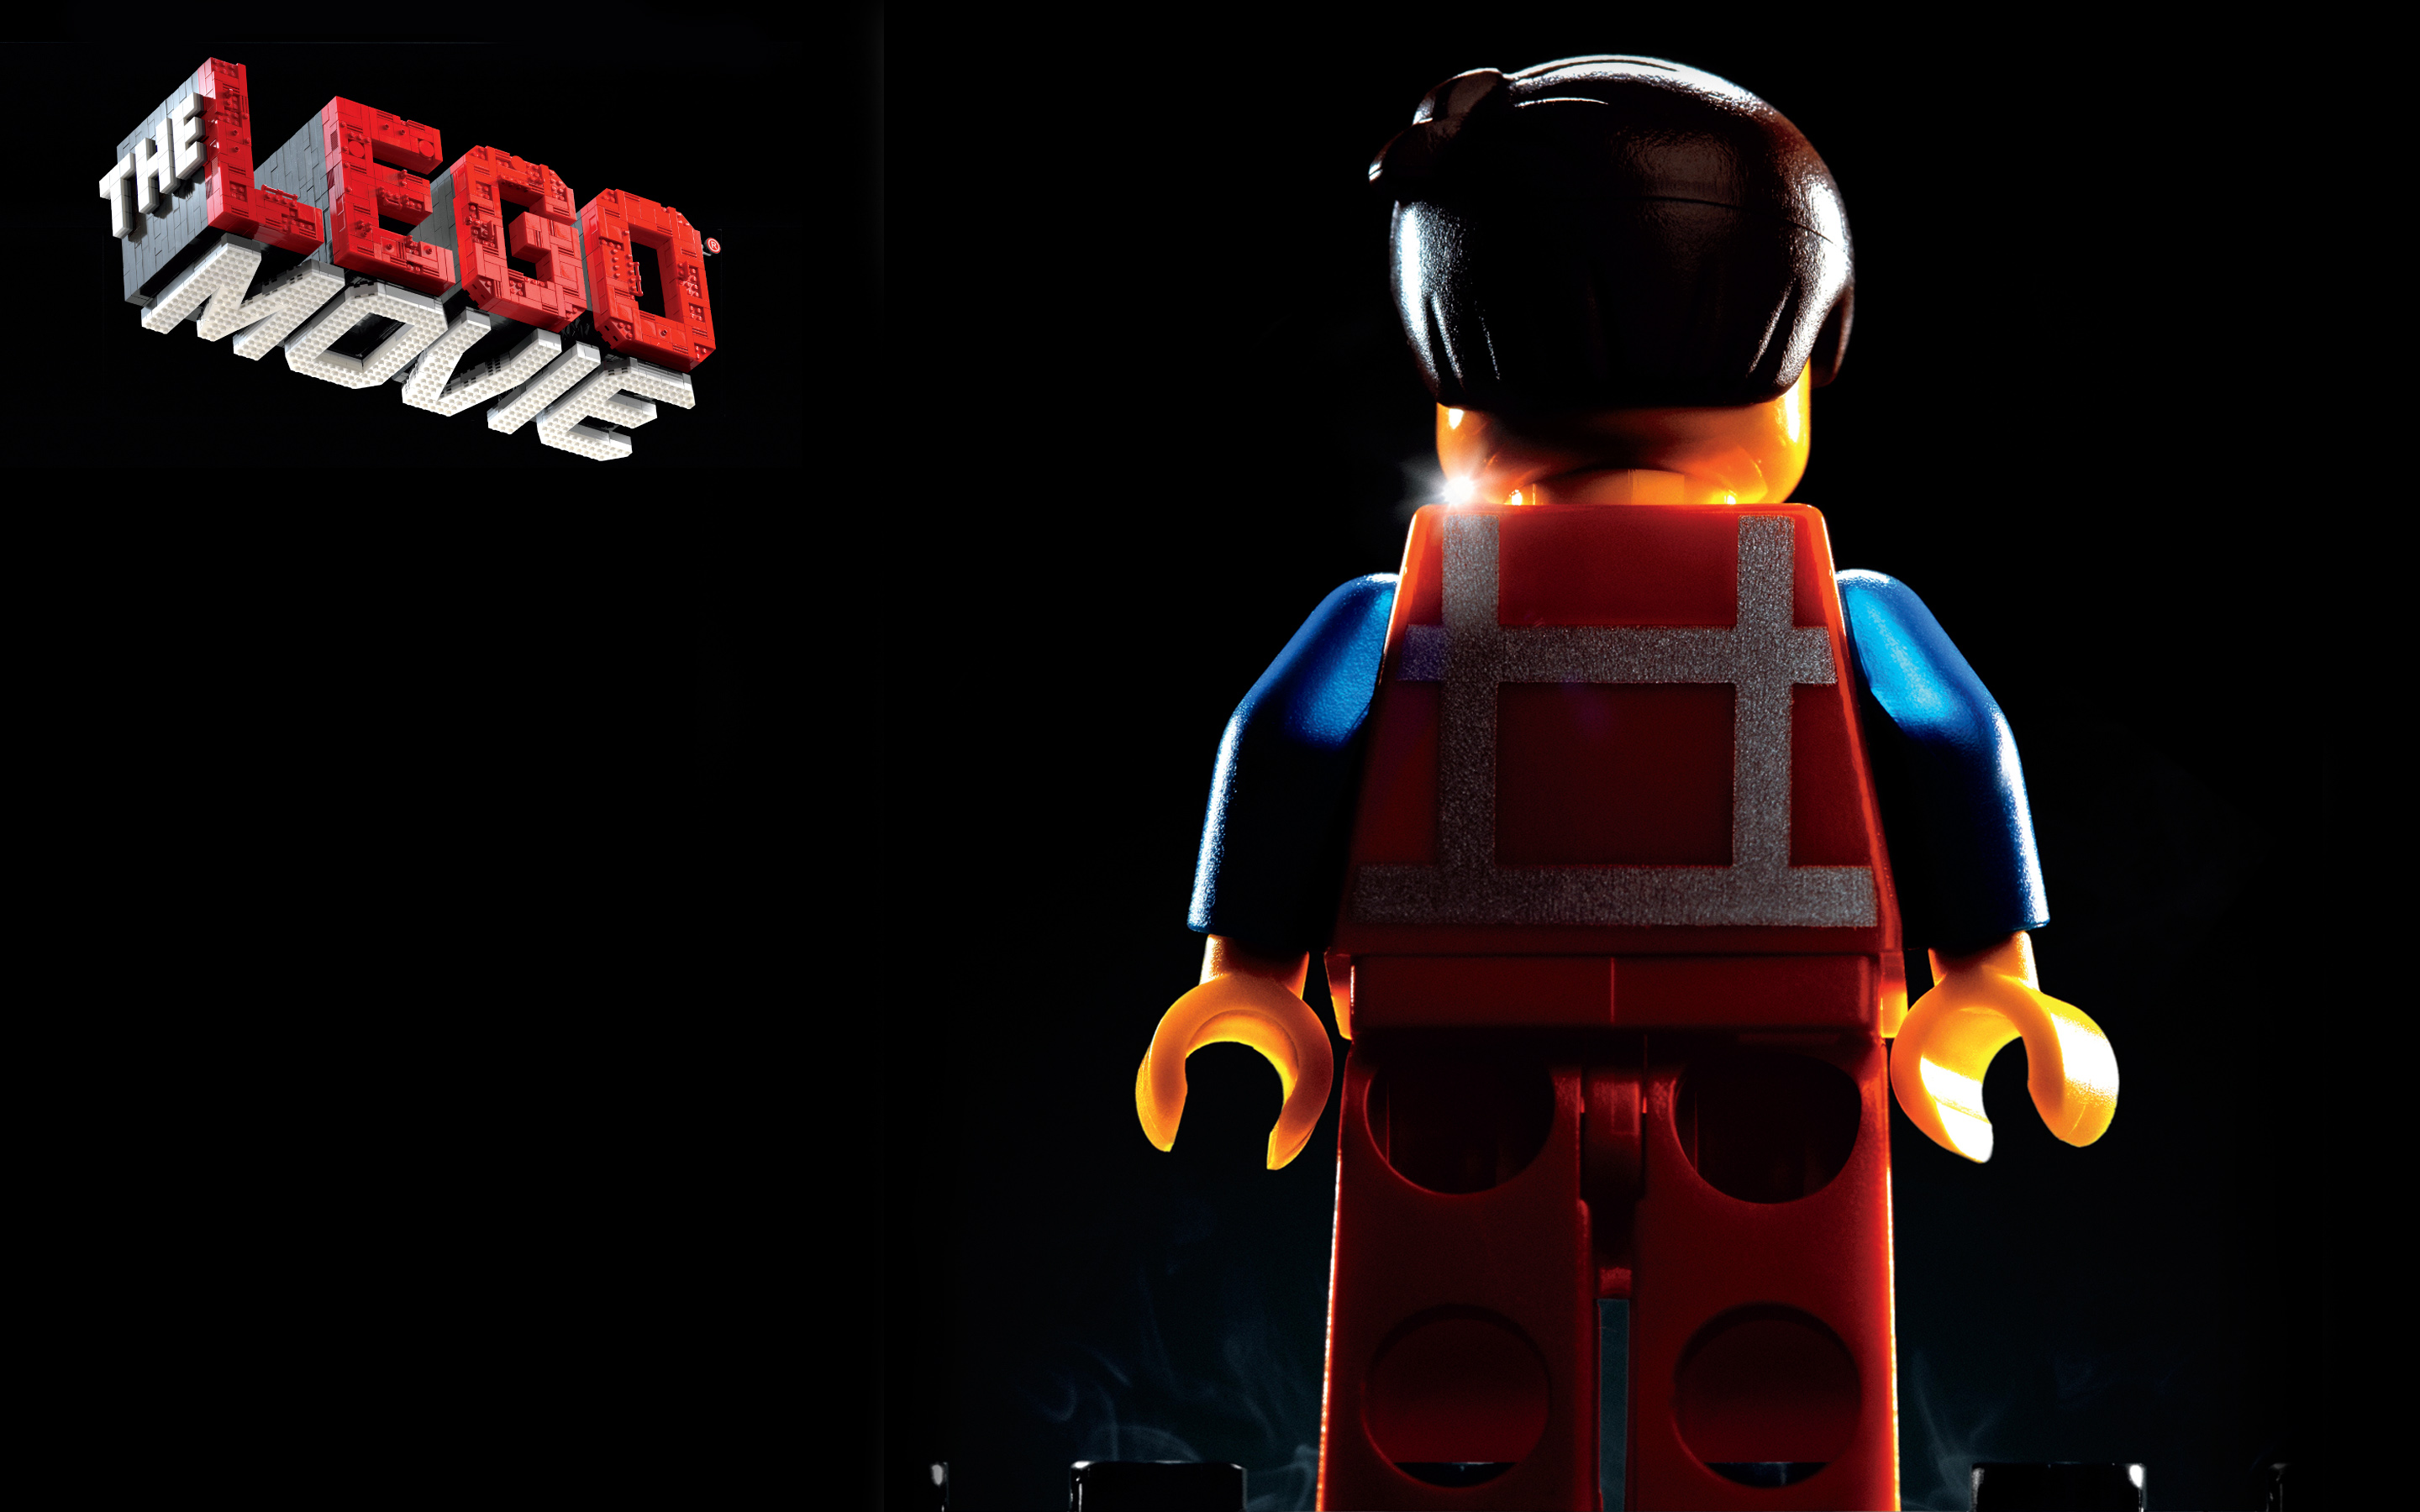 Pictures From The Lego Movie: Movie Theme Songs & TV Soundtracks